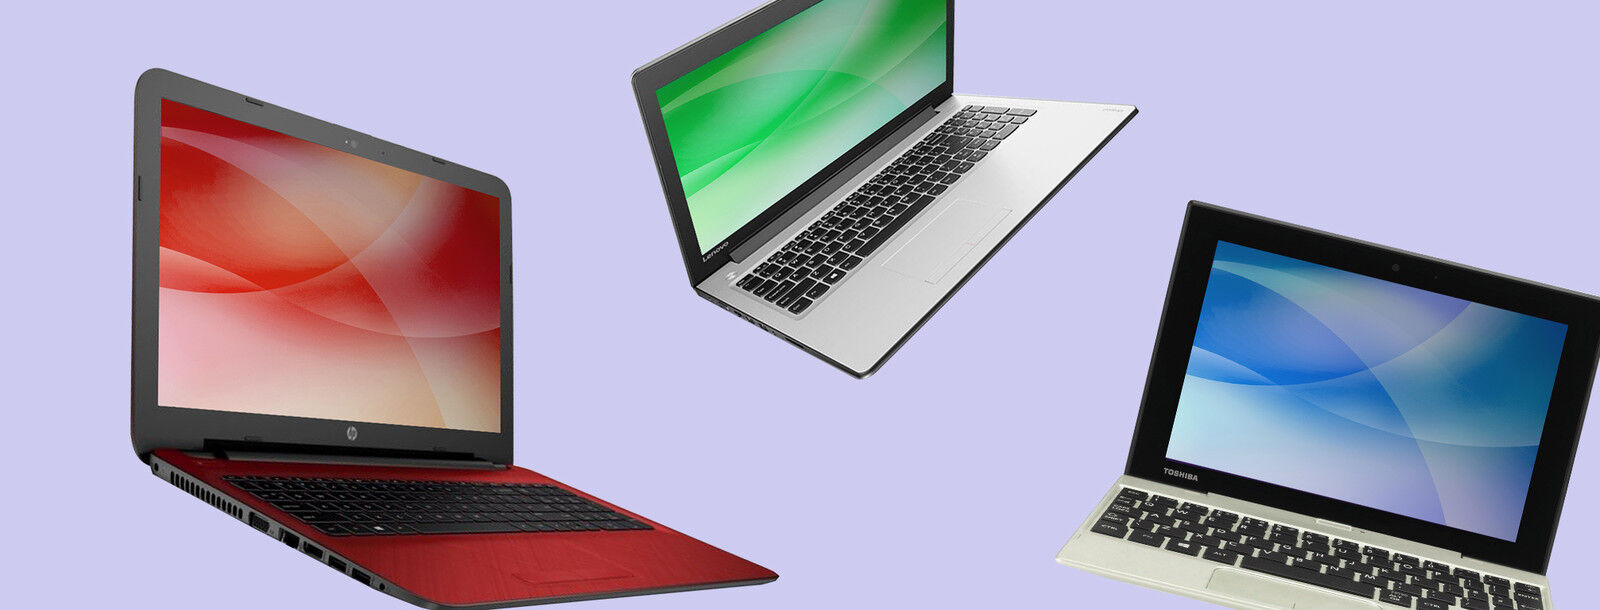 Save up to 50% with refurb laptops.